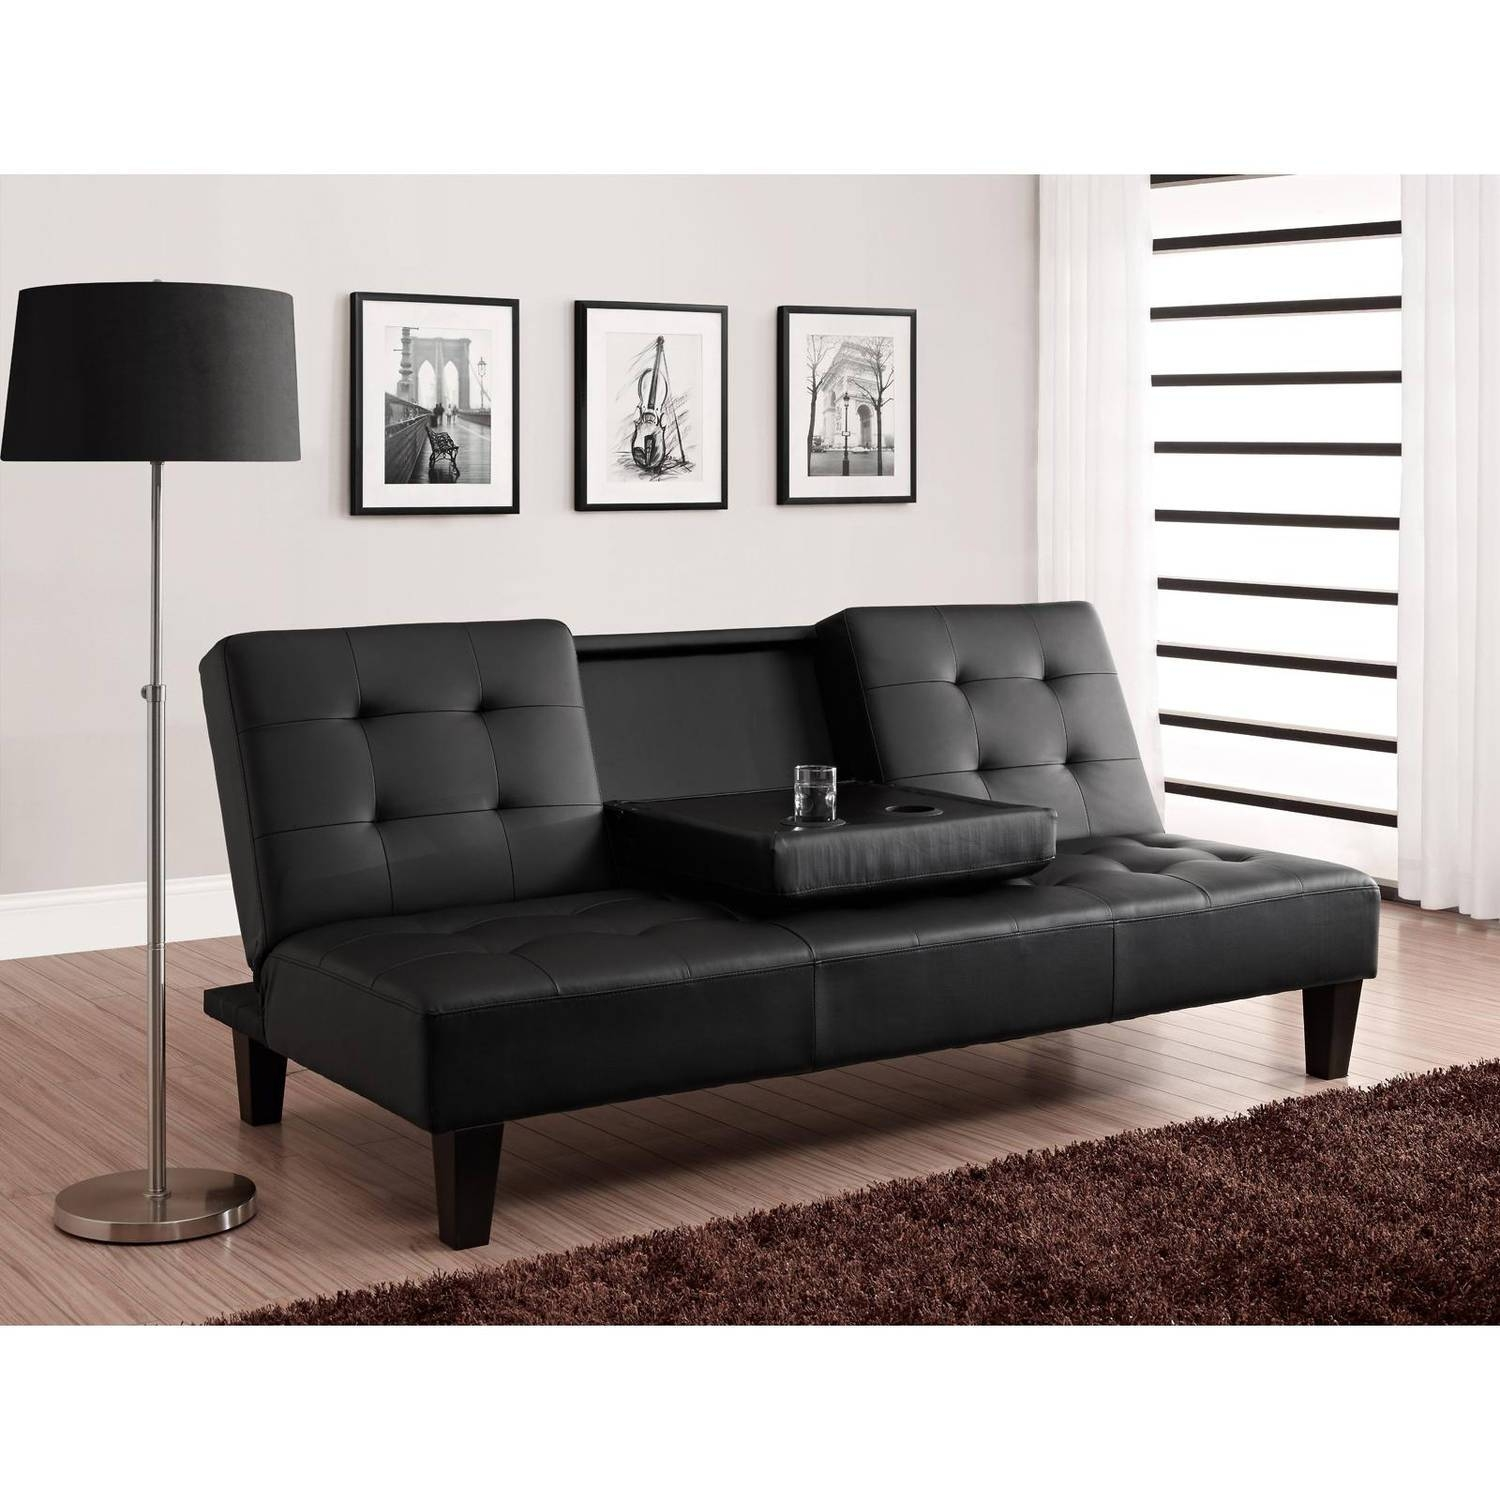 Belle Faux Leather Convertible Futon Sofa Bed White with Convertible Futon Sofa Beds (Image 4 of 15)